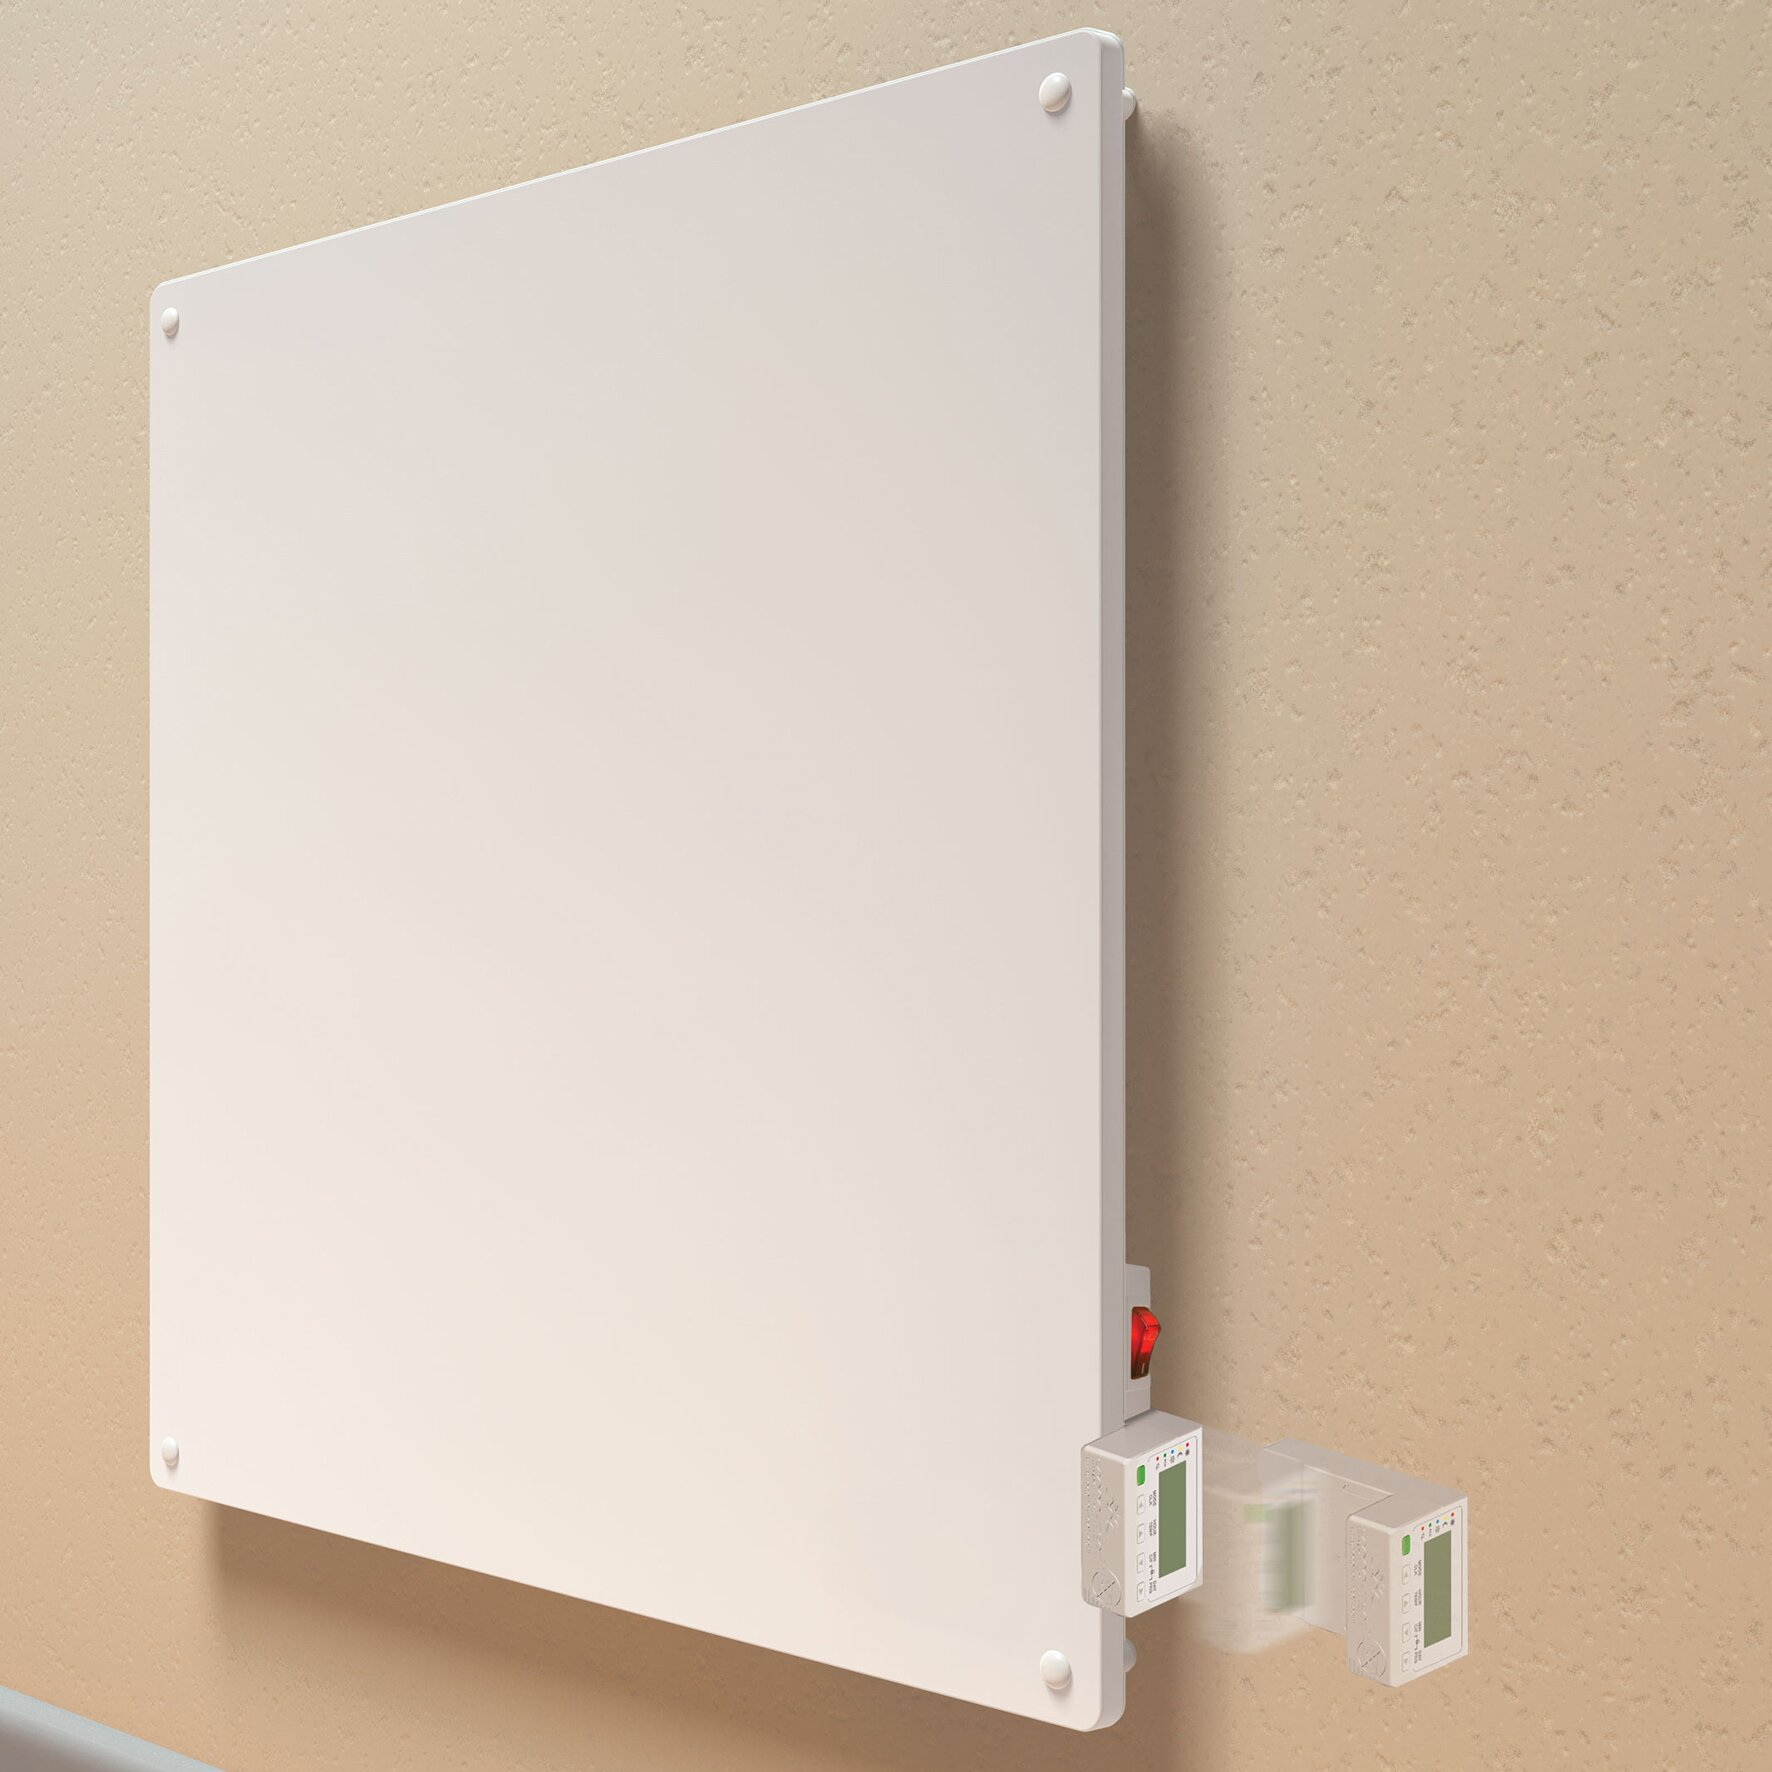 Wall Mount Heater With Thermostat : Econo heat watt wall mounted electric convection panel